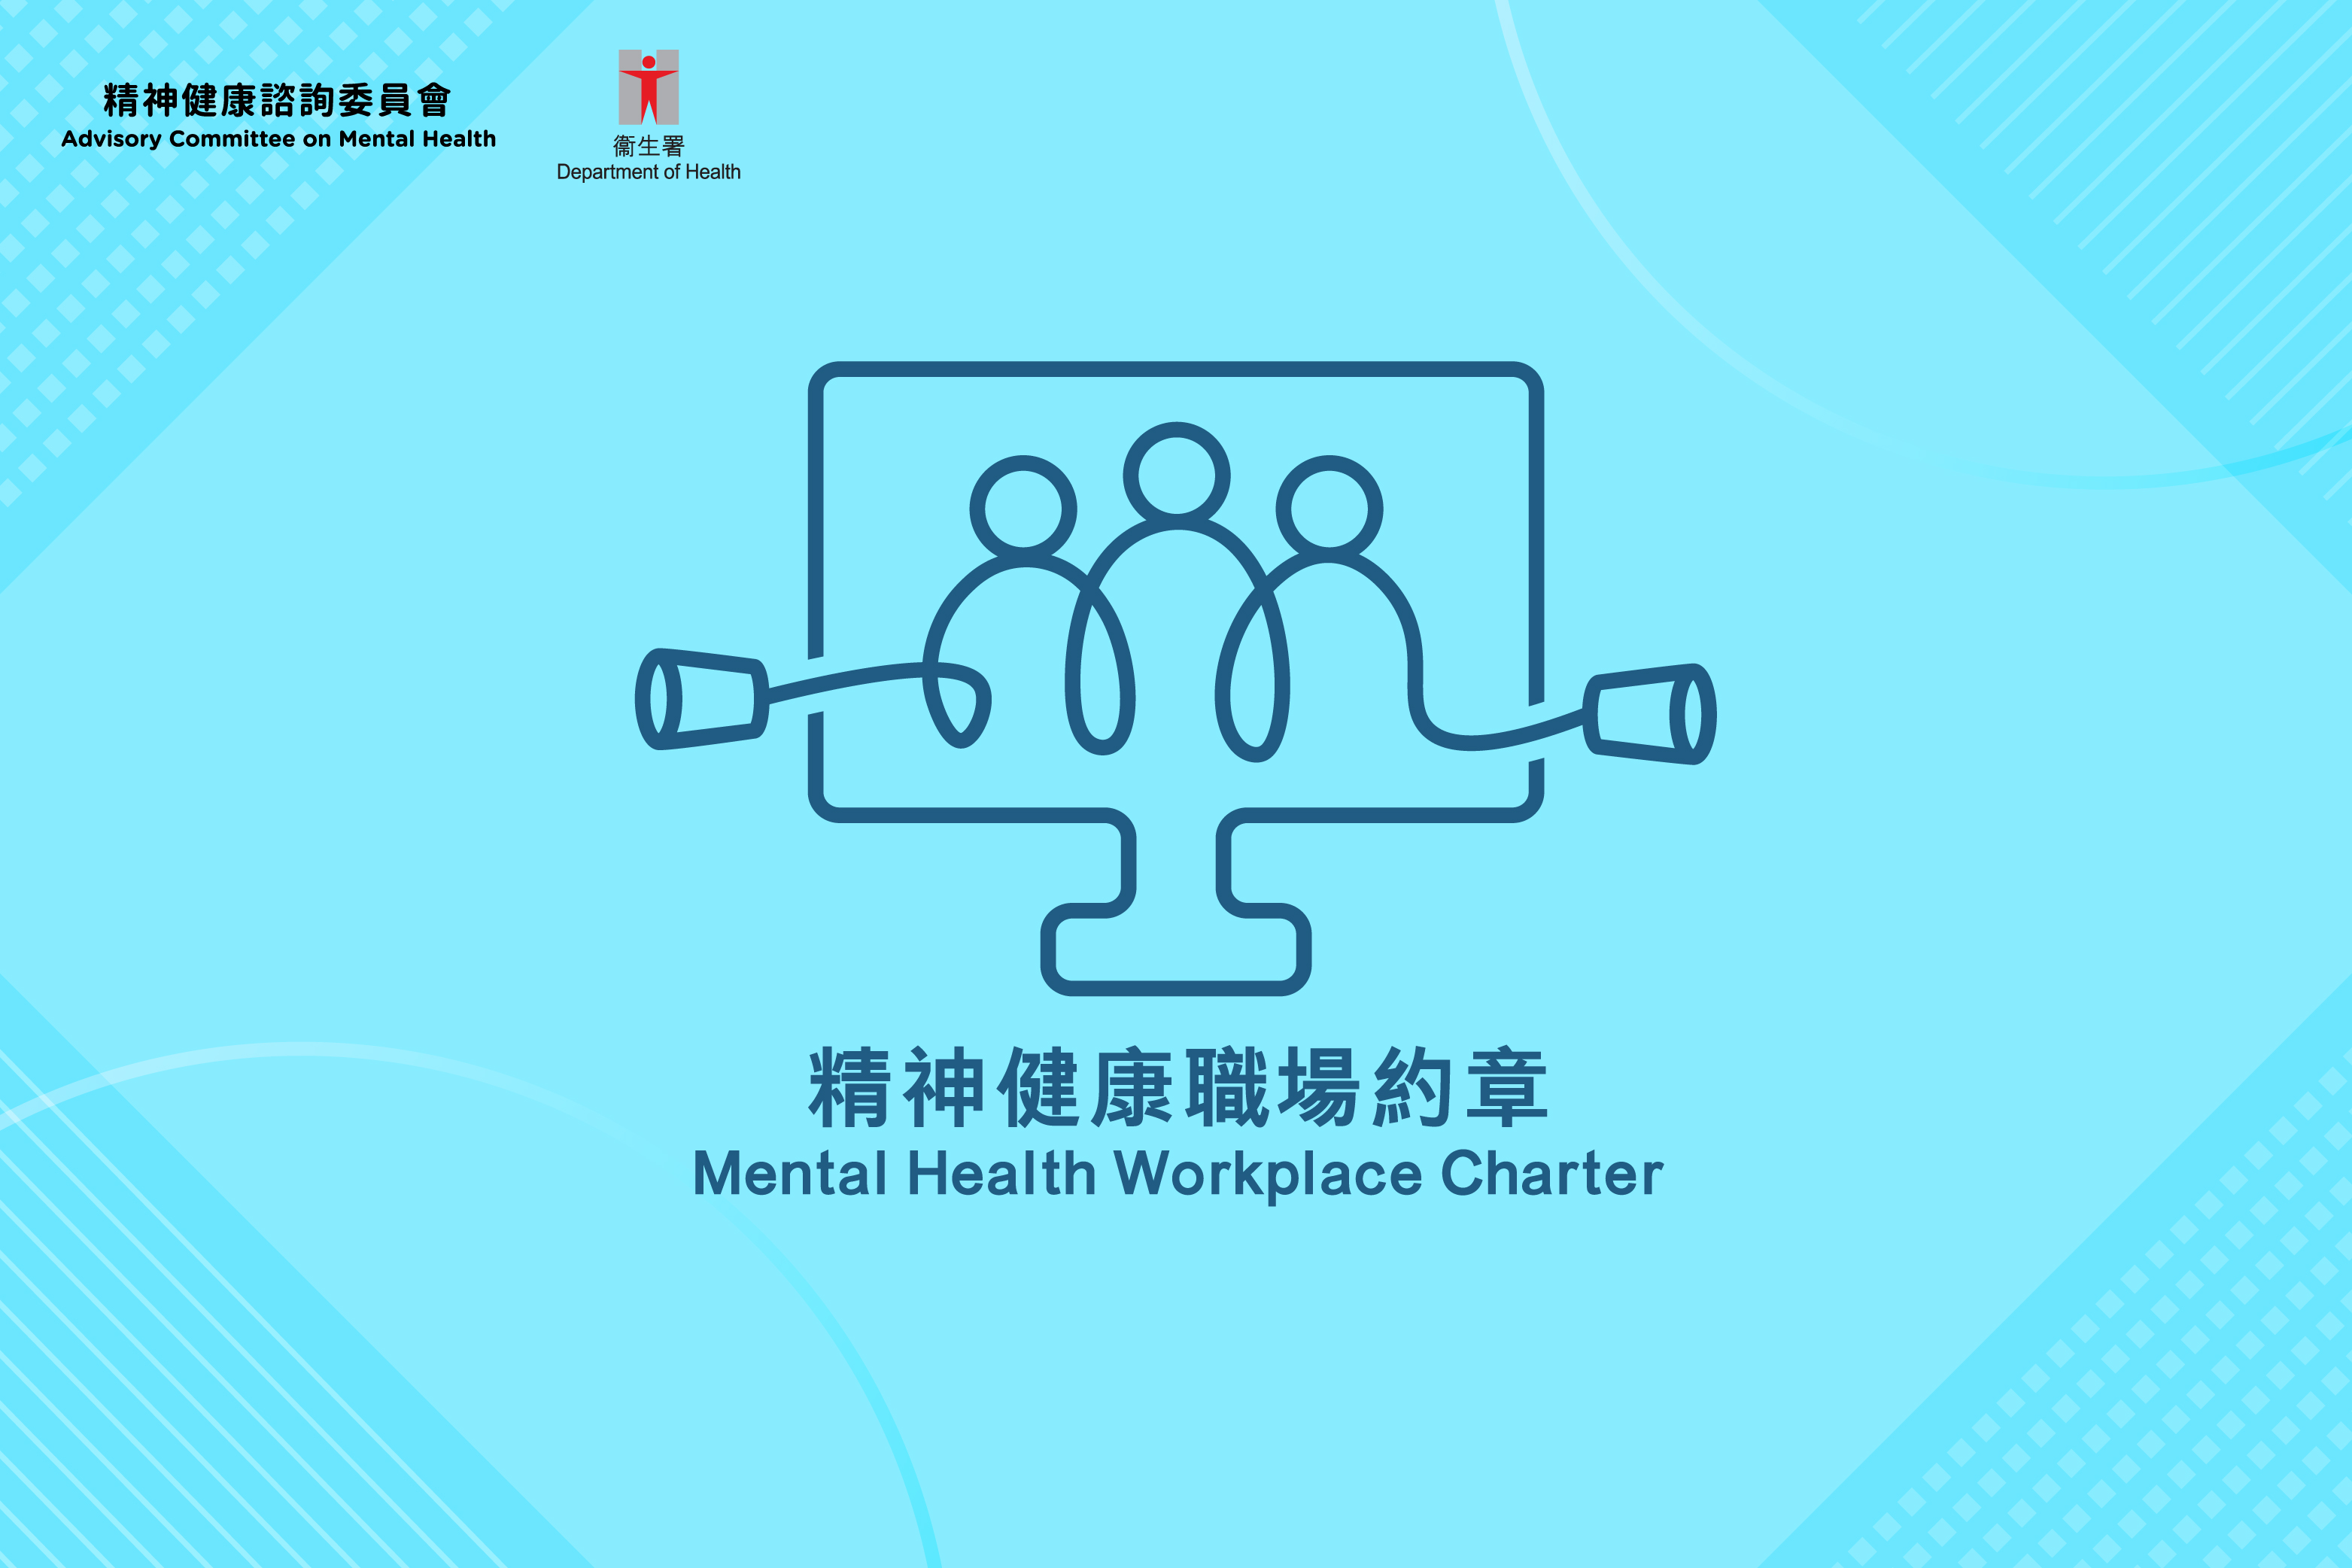 Mental Health Workplace Charter